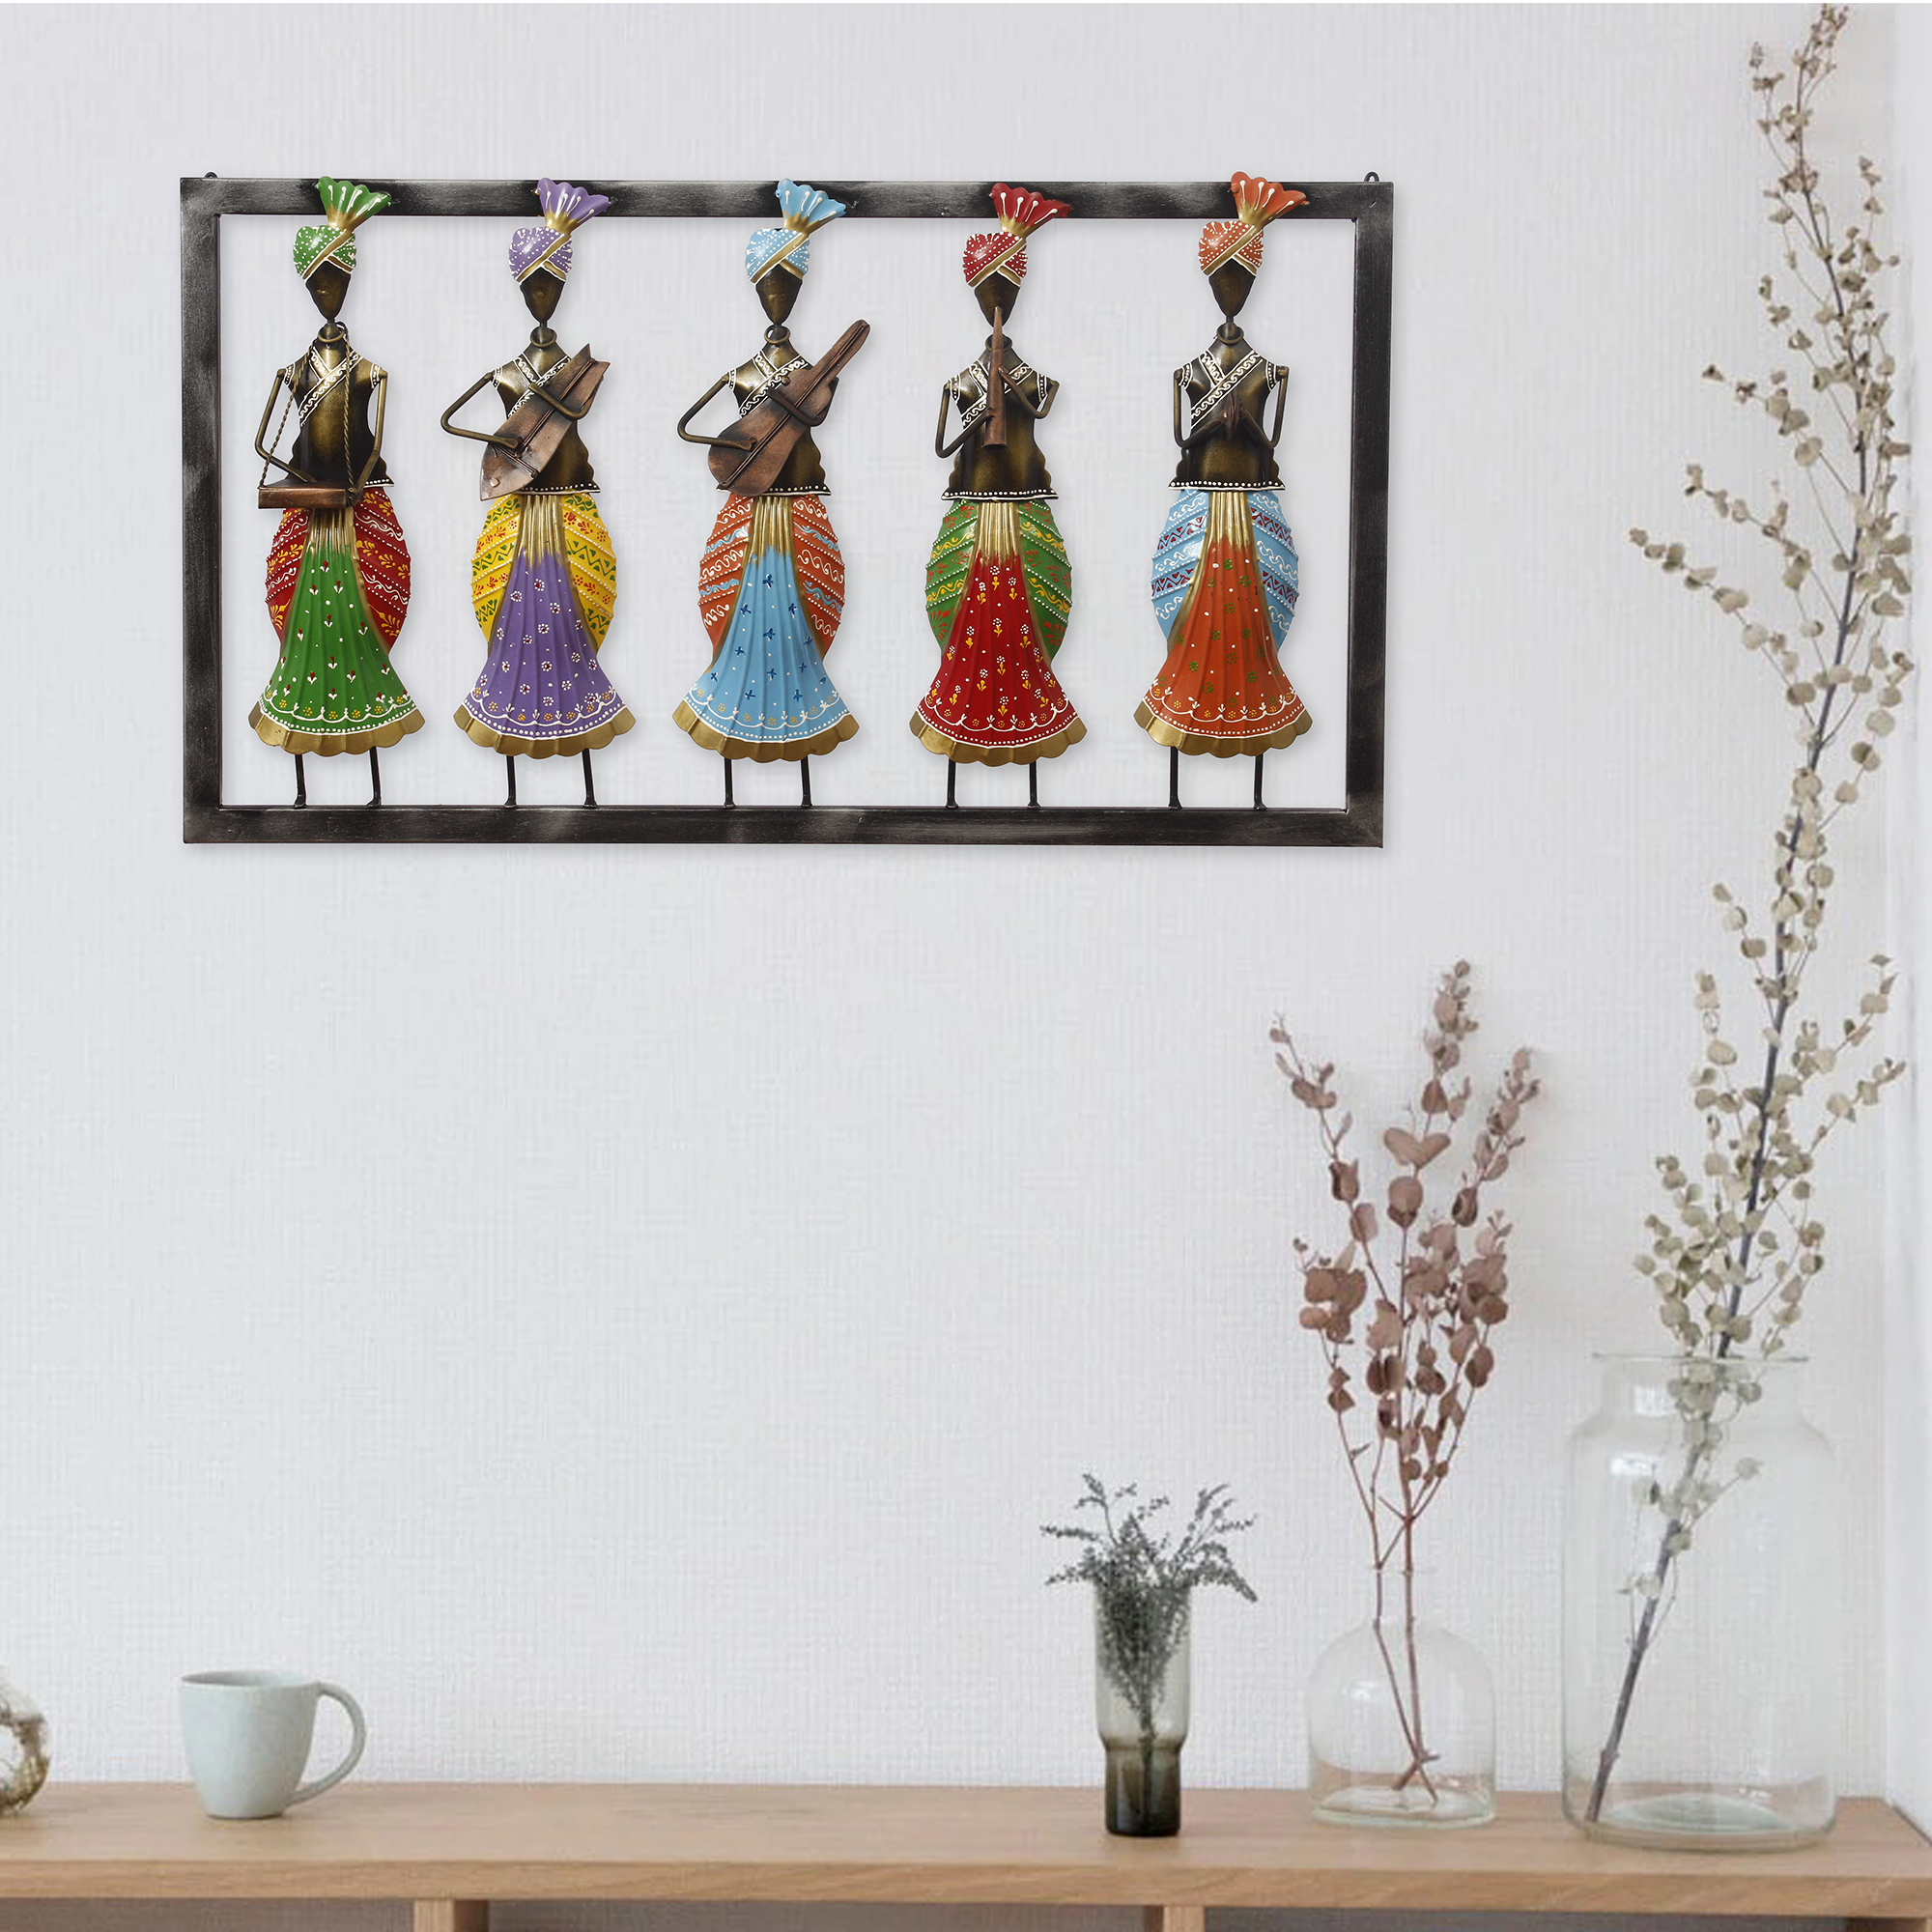 Set of 5 Tribal Women Playing Different Musical Instruments Colorful Decorative Iron Wall Hanging Indian Home Decor